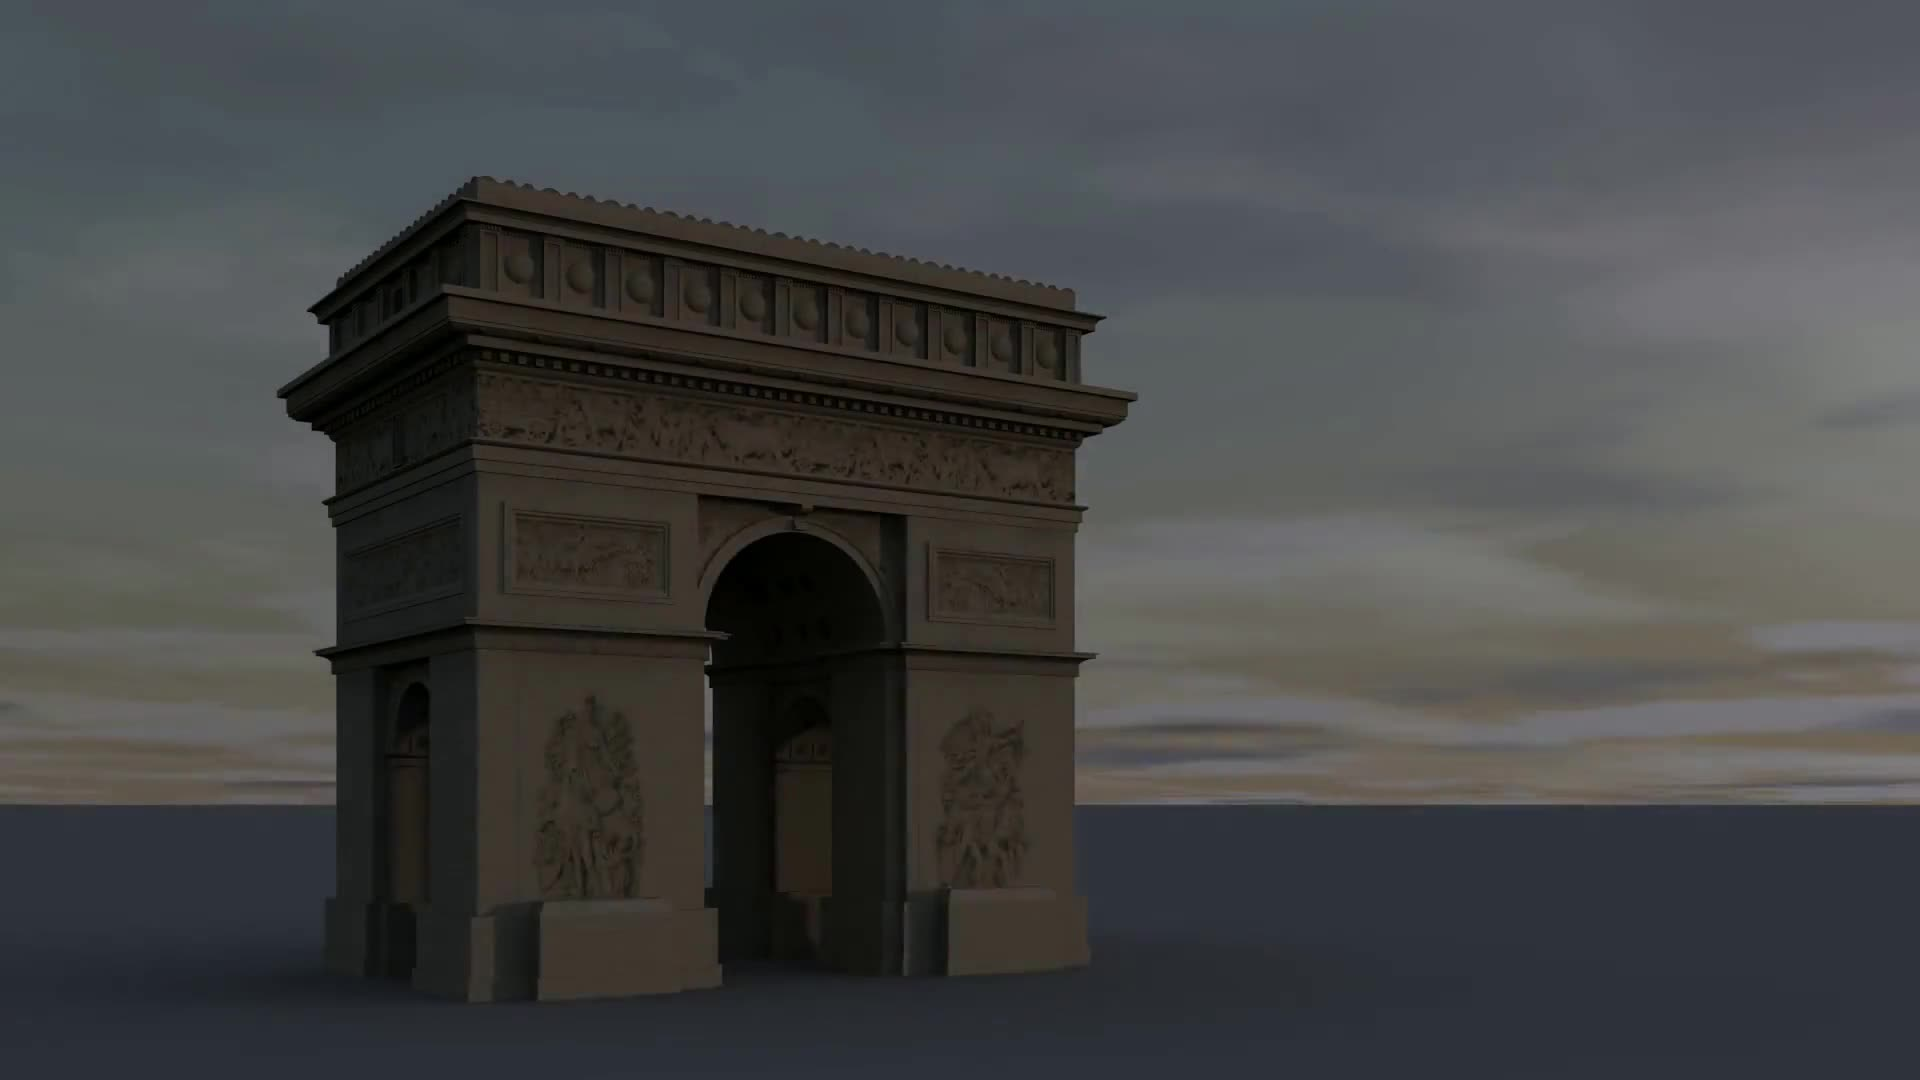 Arc de triumph arc de triomphe paris france art